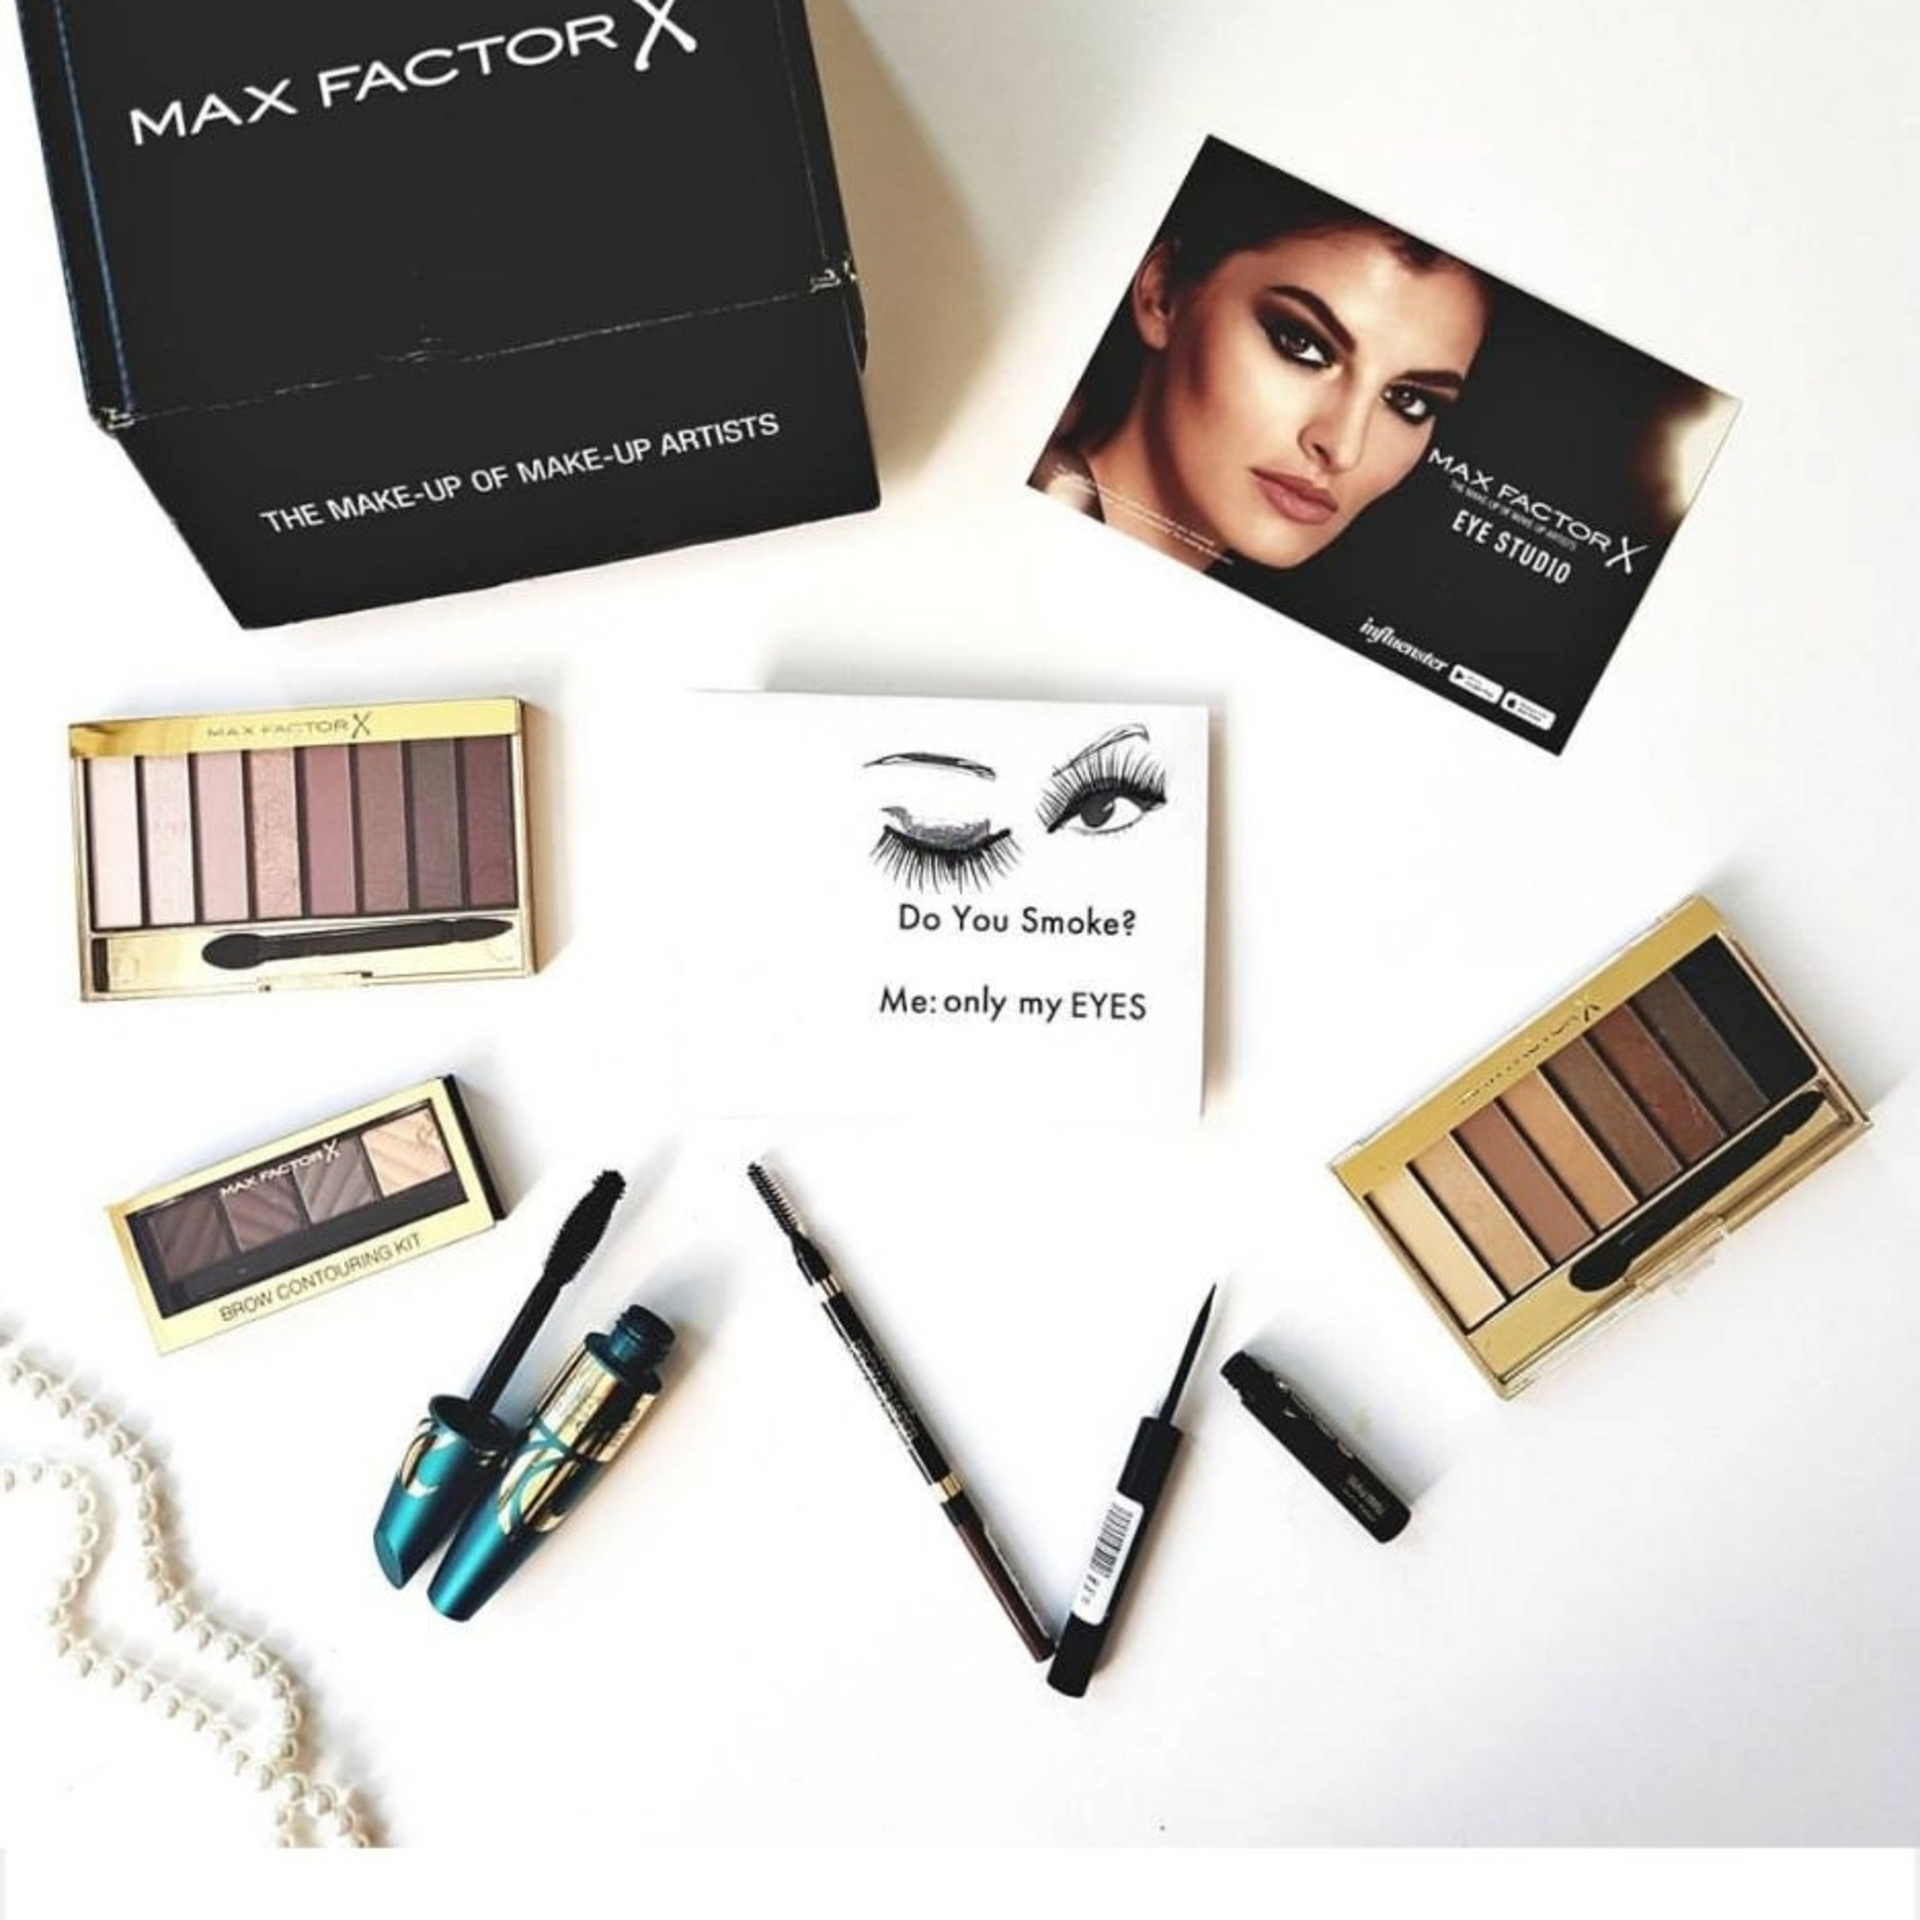 Max Factor Vox Box Review